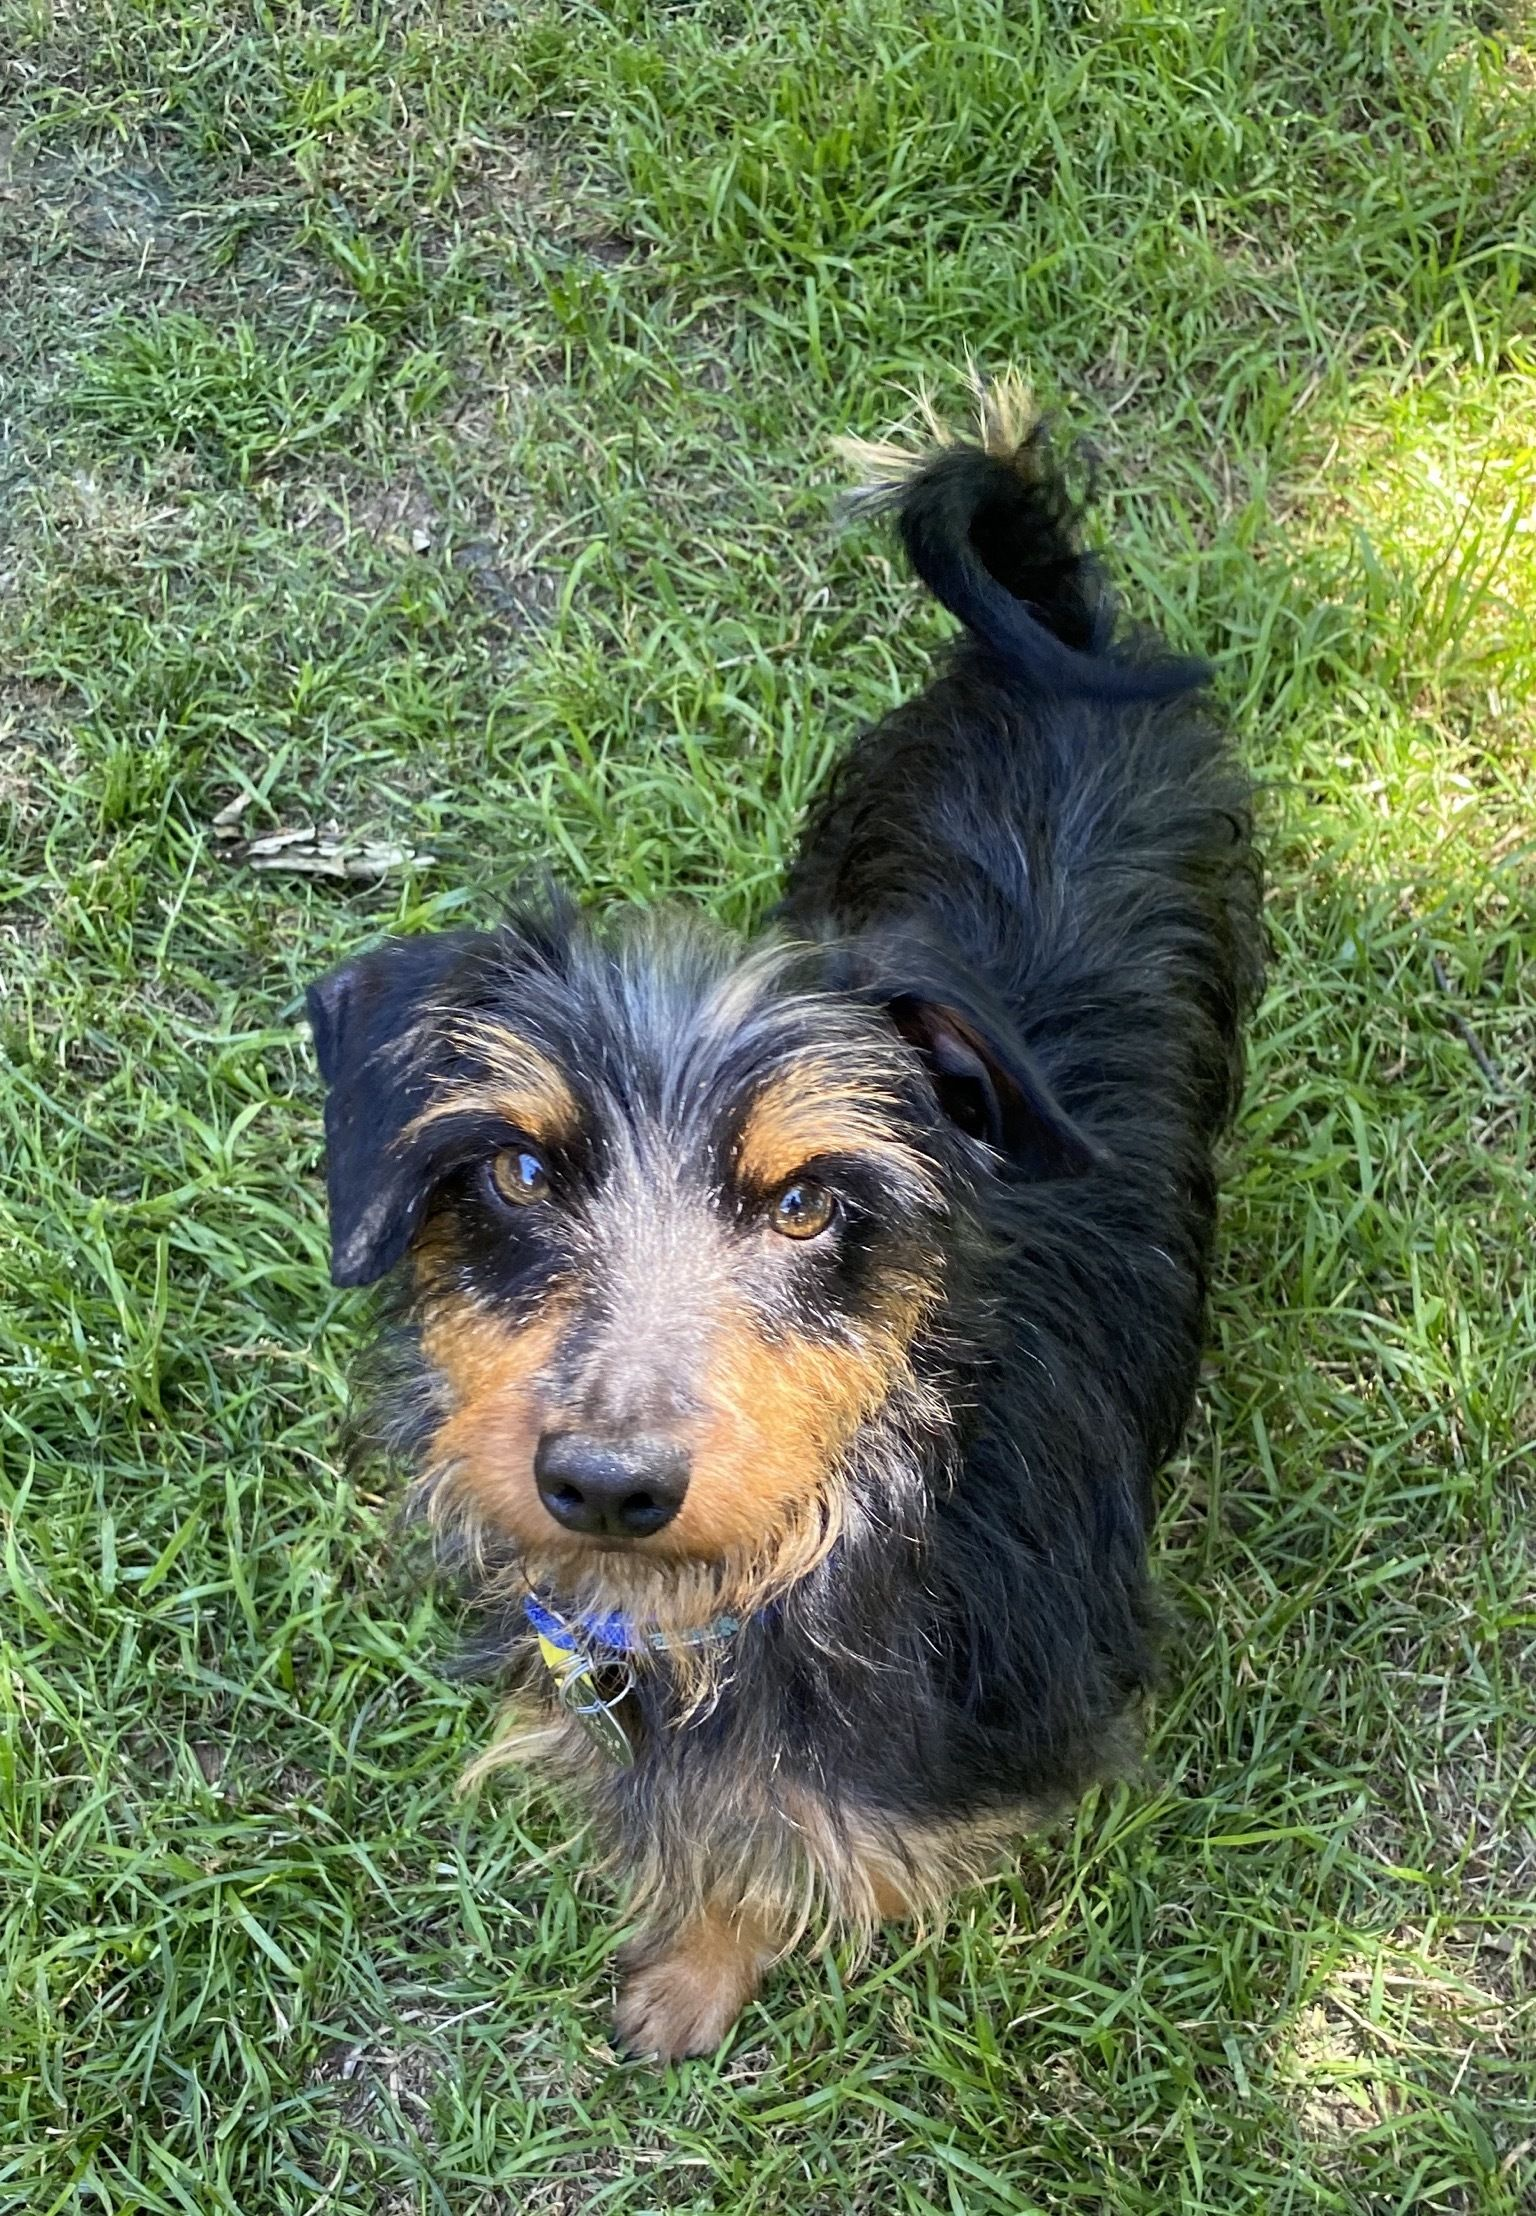 Thomas Is An Adoptable Wirehaired Dachshund Searching For A